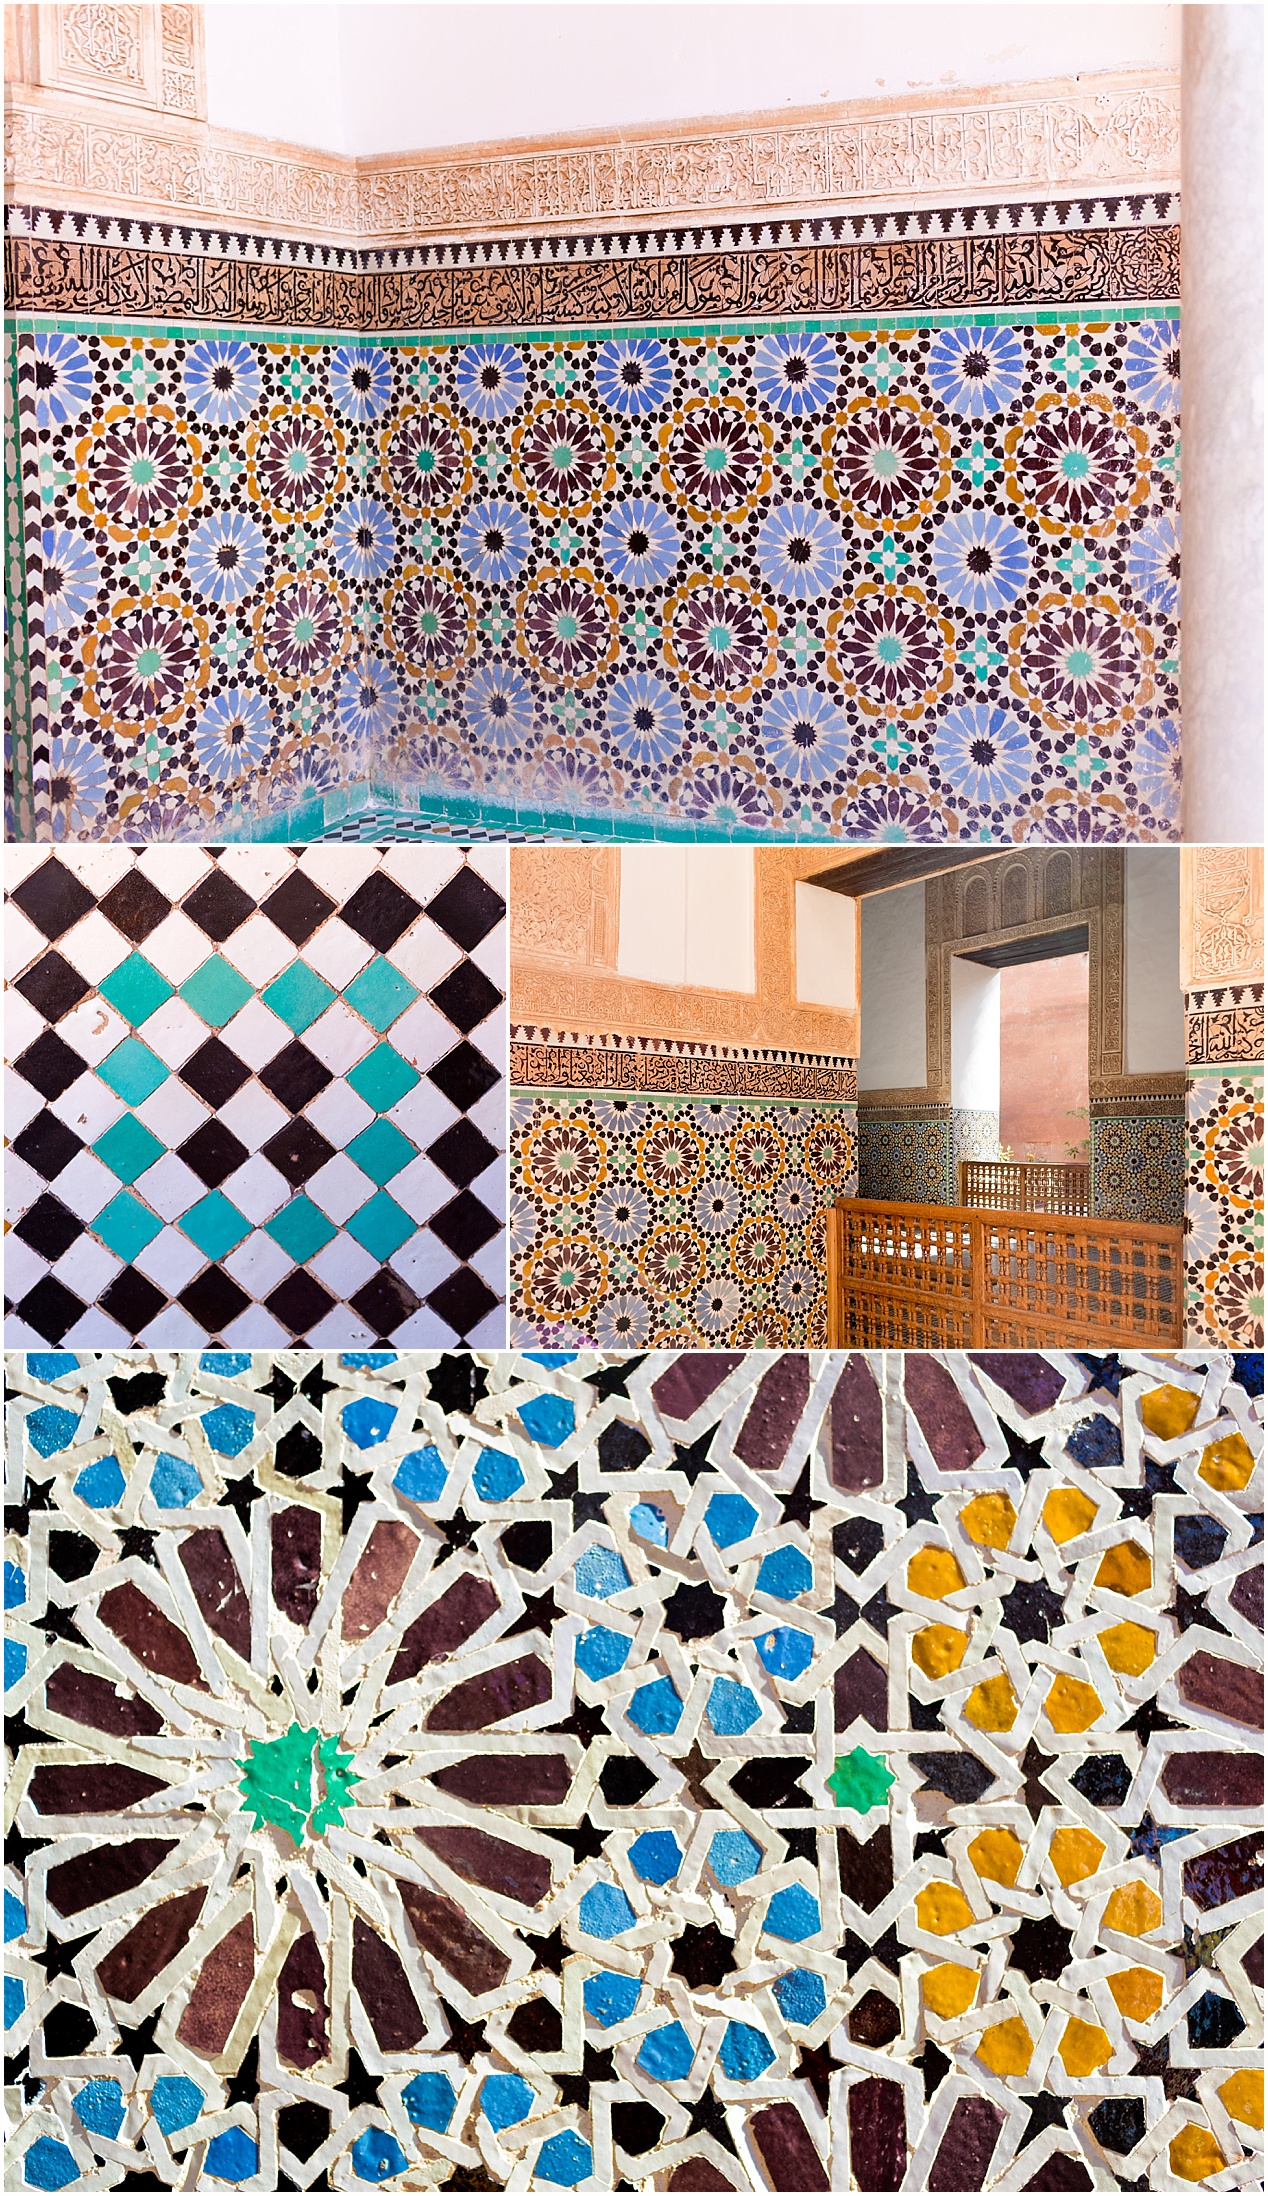 colorful mosaic tiles at Saadian tombs of Marrakech, Morocco